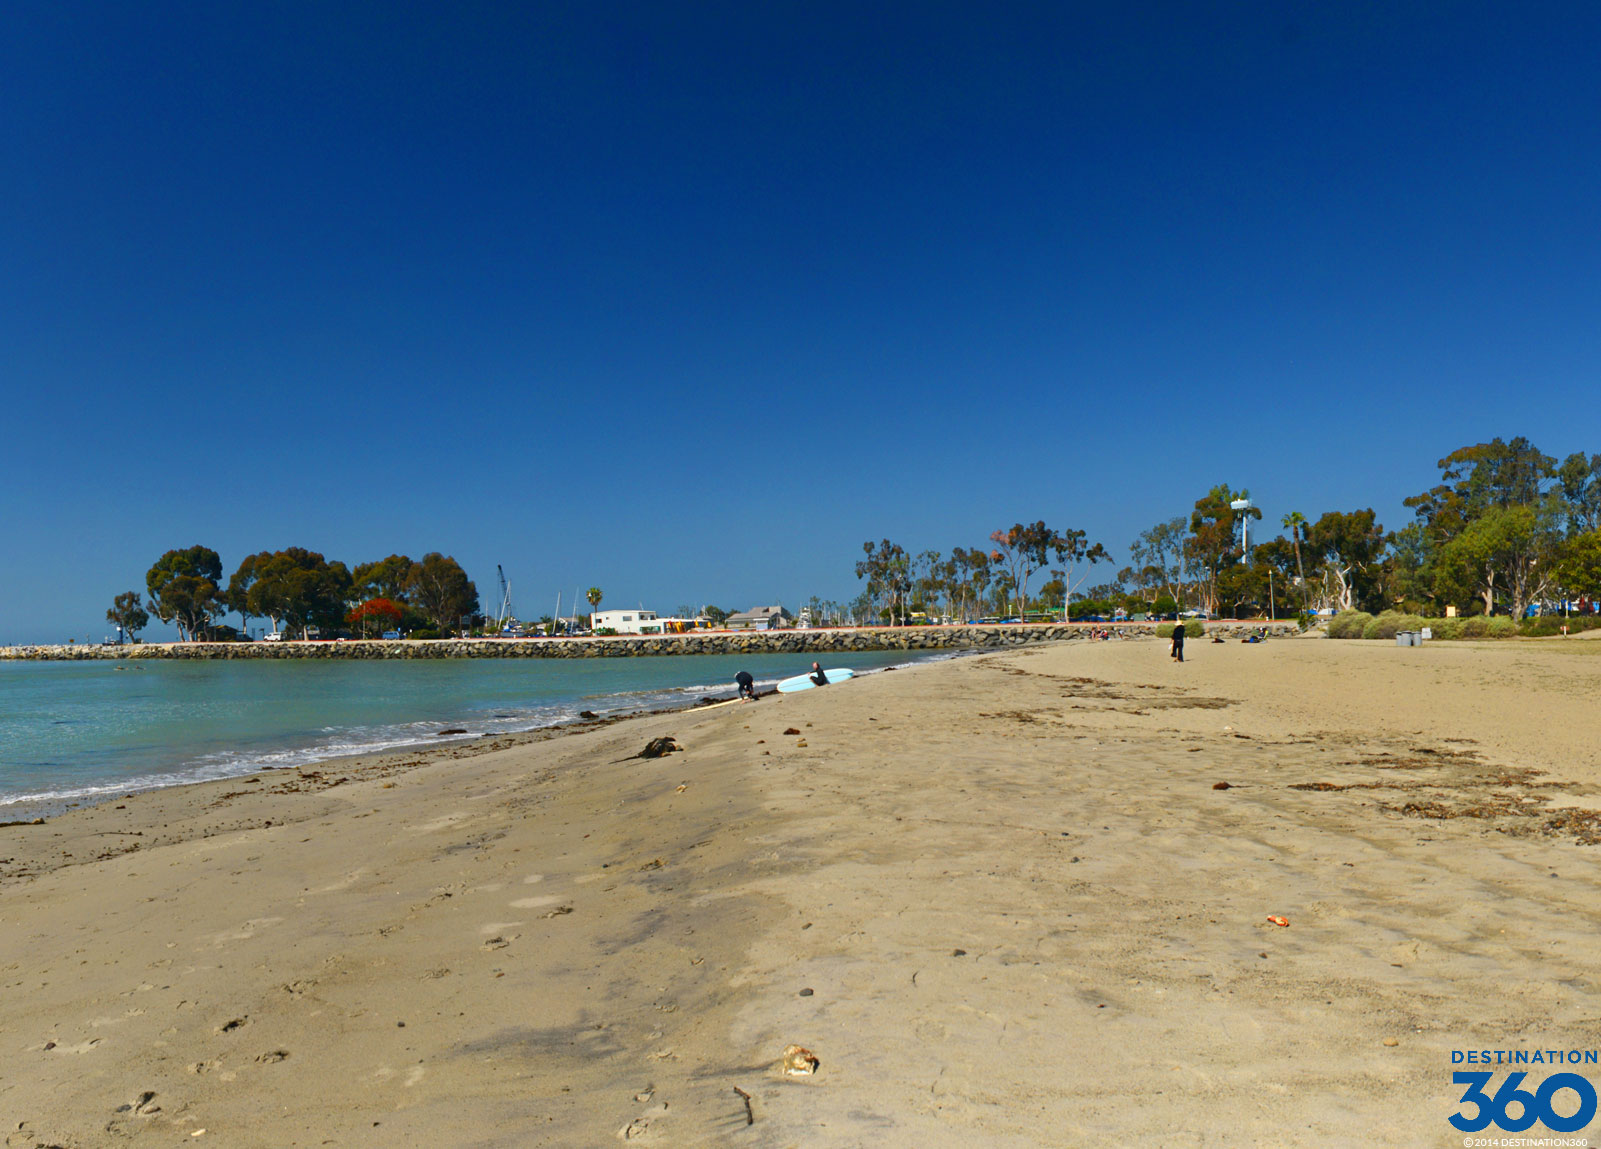 Dana Point Beaches Virtual Tour